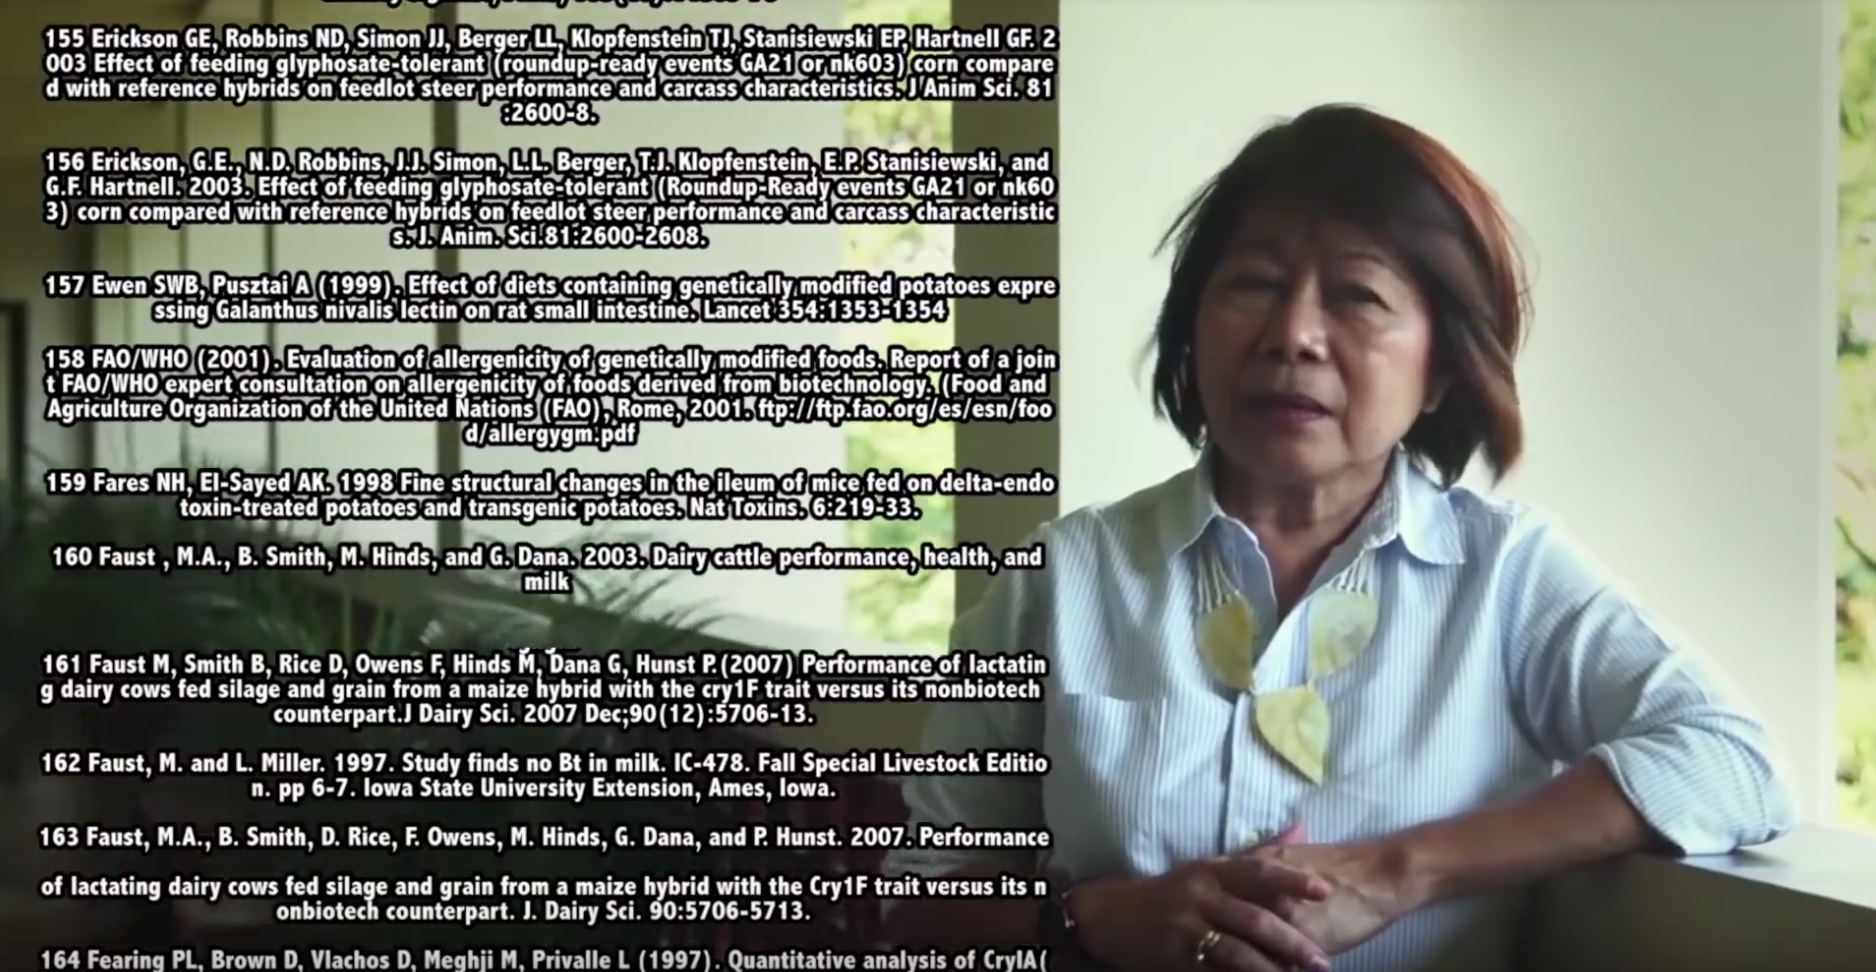 Golden Rice and Why You Should Not Fund Greenpeace2